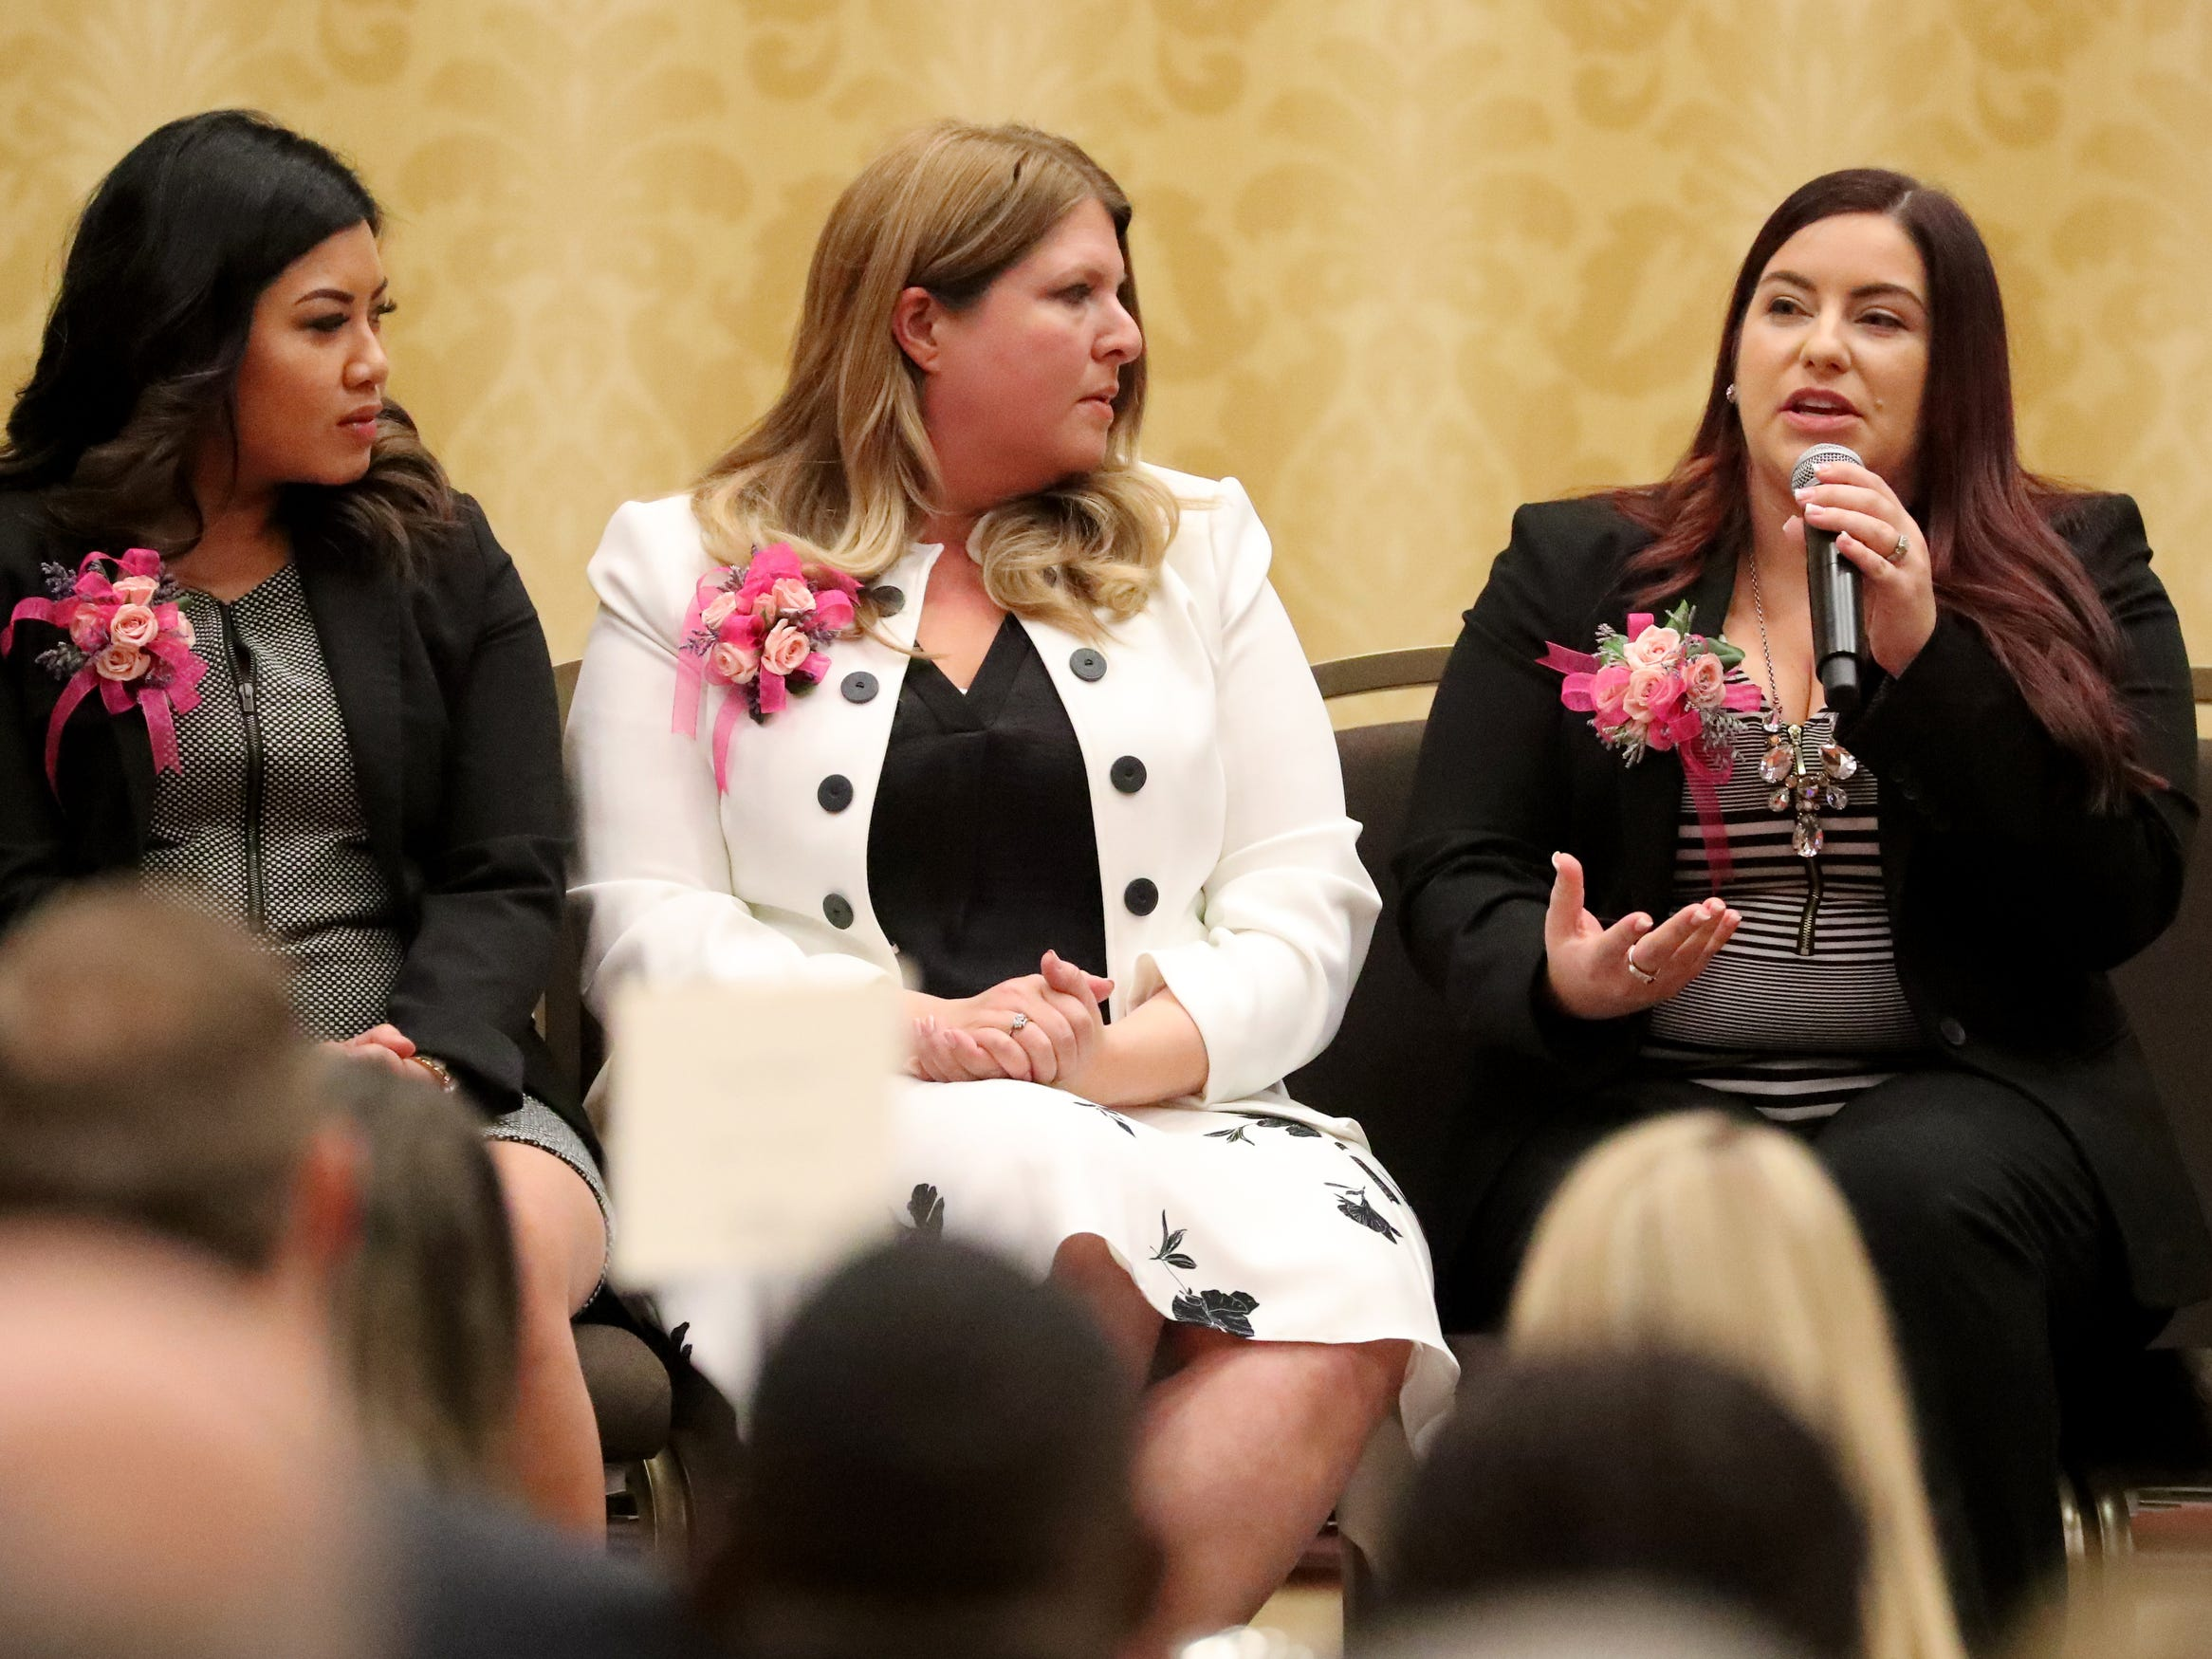 Honoree Rebecca Goodwin, Co-owner and Office Manager of Goodwin Plumbing, answers questions during the Murfreesboro Magazine's 2019 Women in Business Luncheon on Tuesday, March 12, 2019, at the Embassy Suites Murfreesboro.